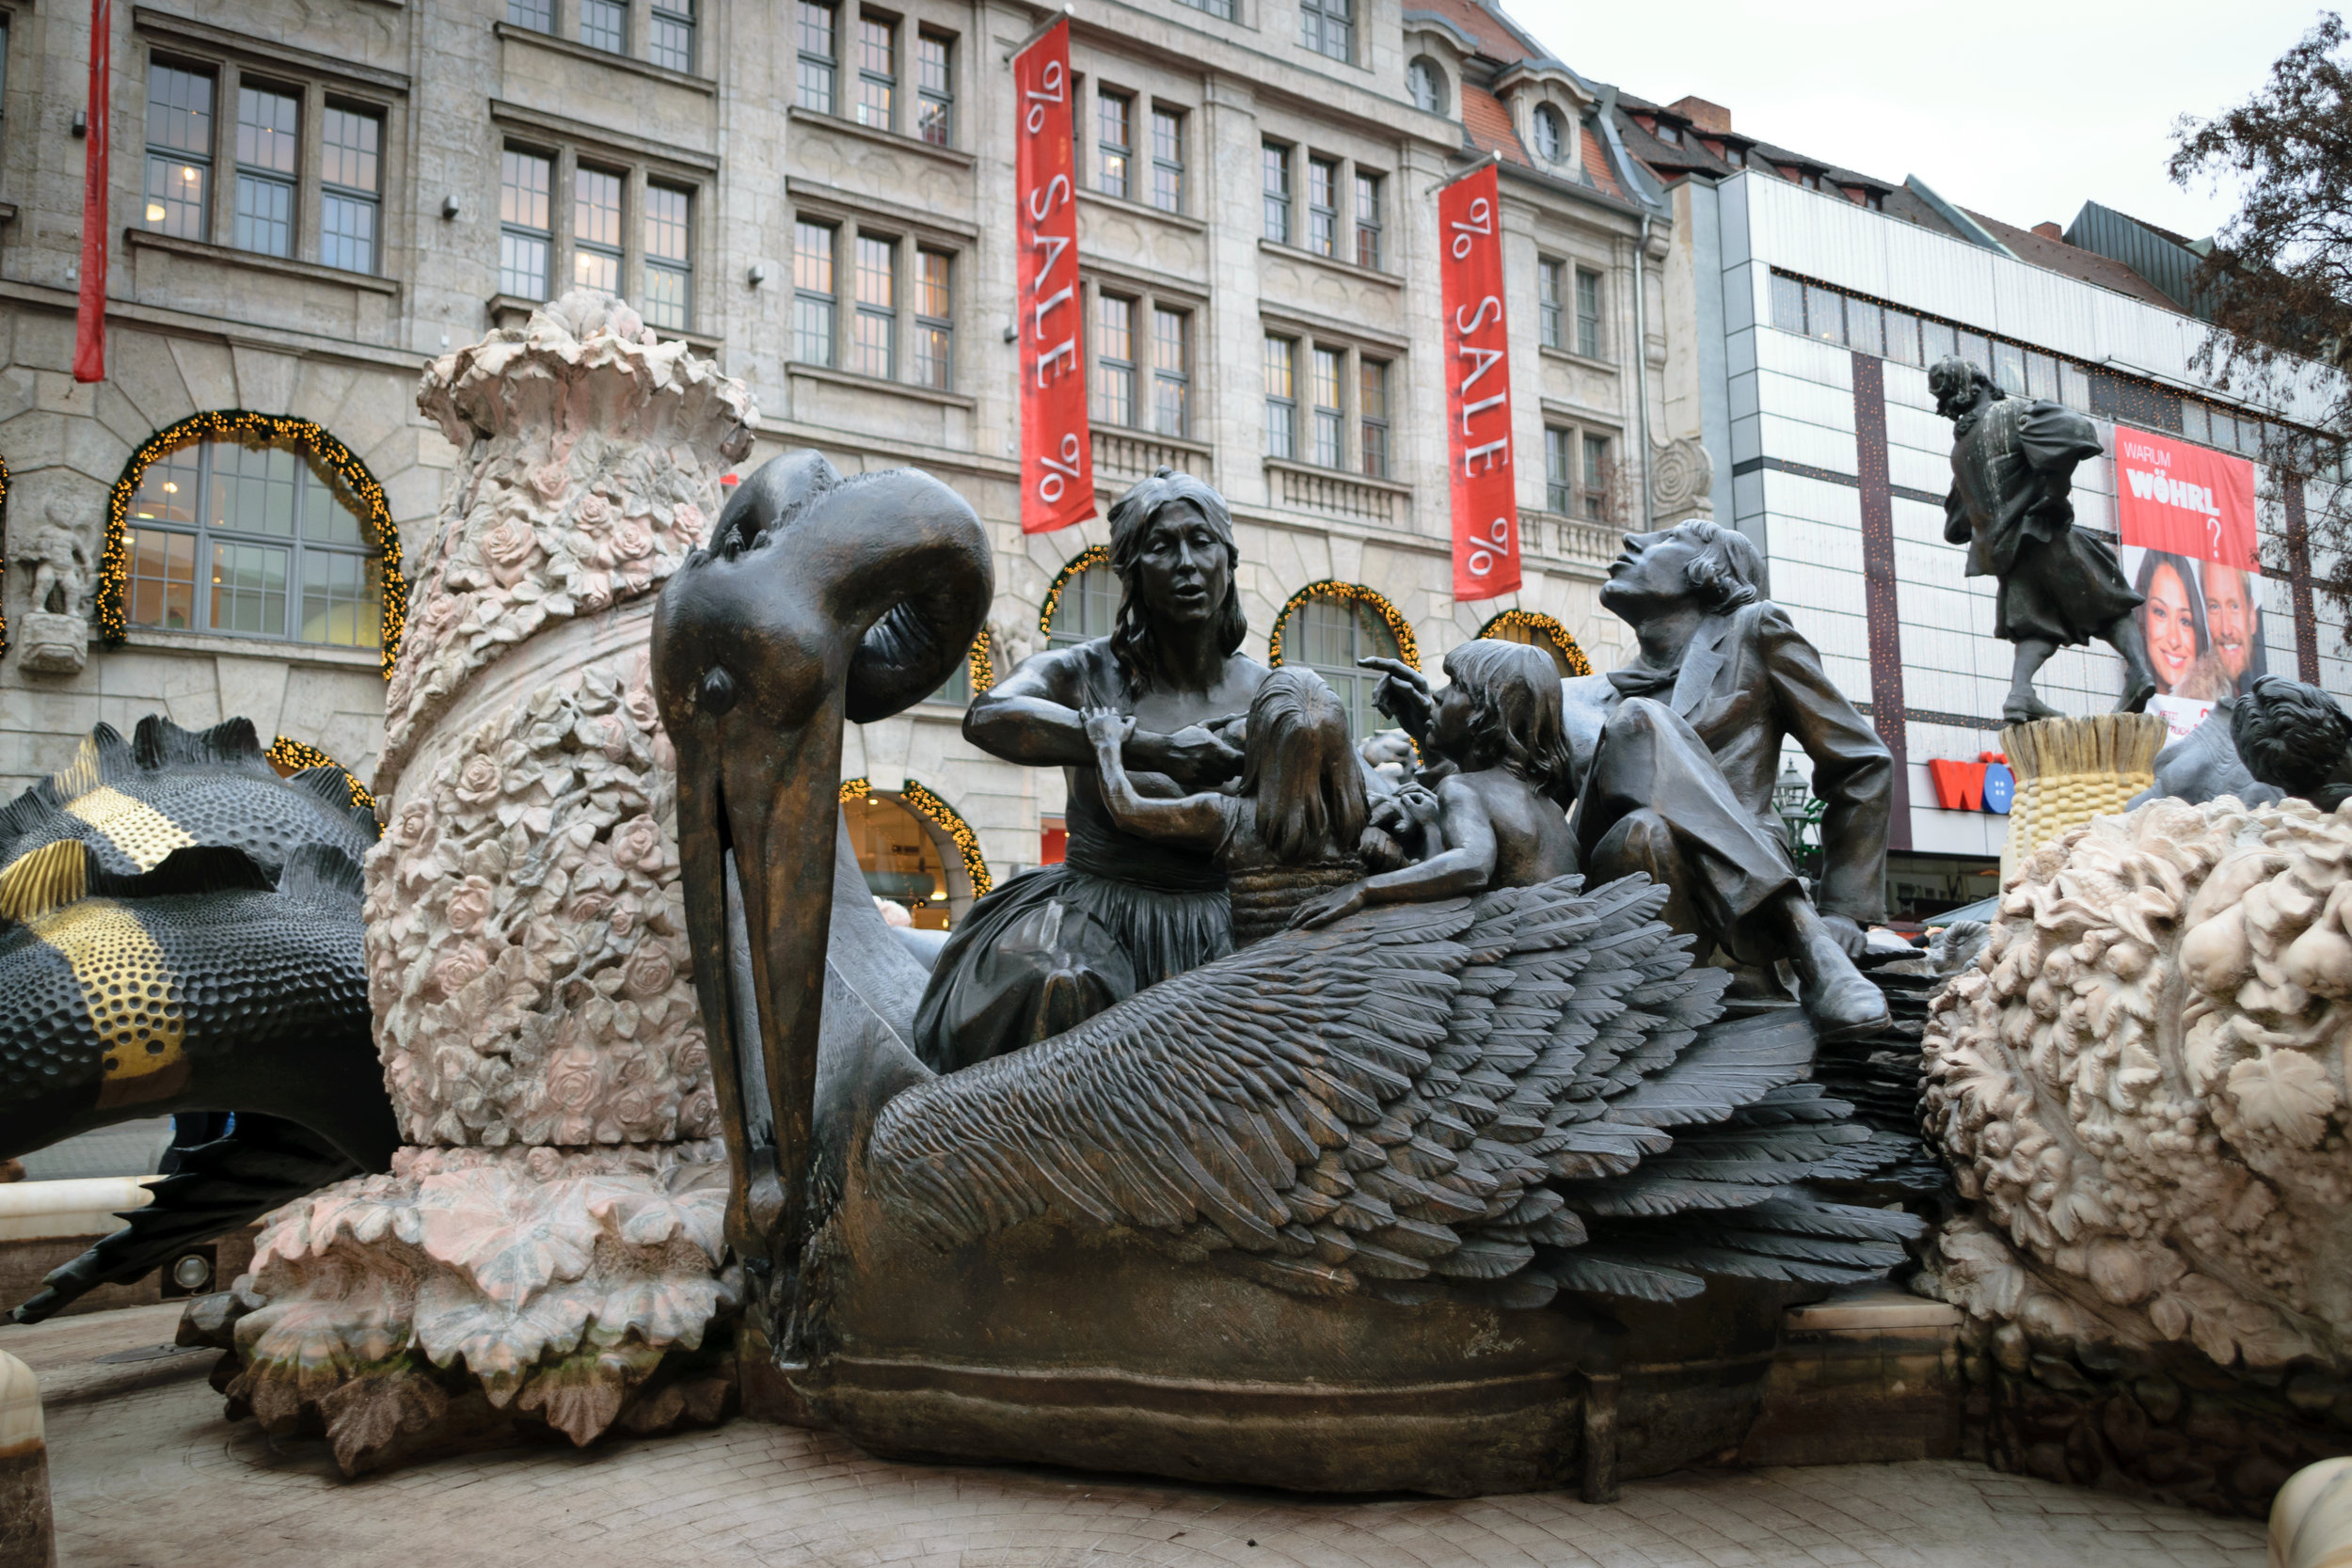 Ehekarussell, a controversial 1984 fountain with ring of statues portraying Hans Sachs' poem 'Bitter-sweet Married Life'